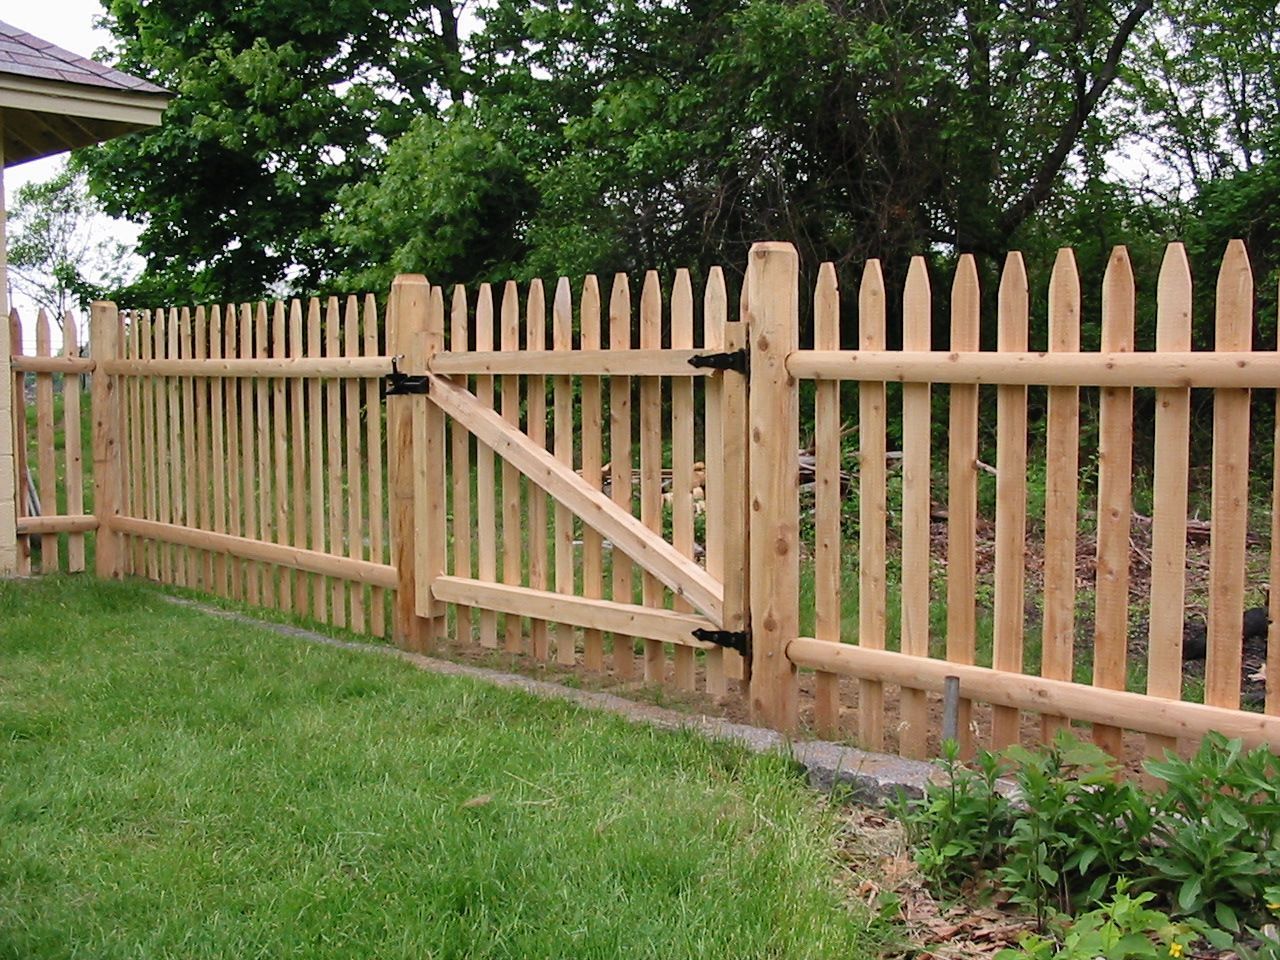 Types of wood fences for backyard types of wood fences for backyard